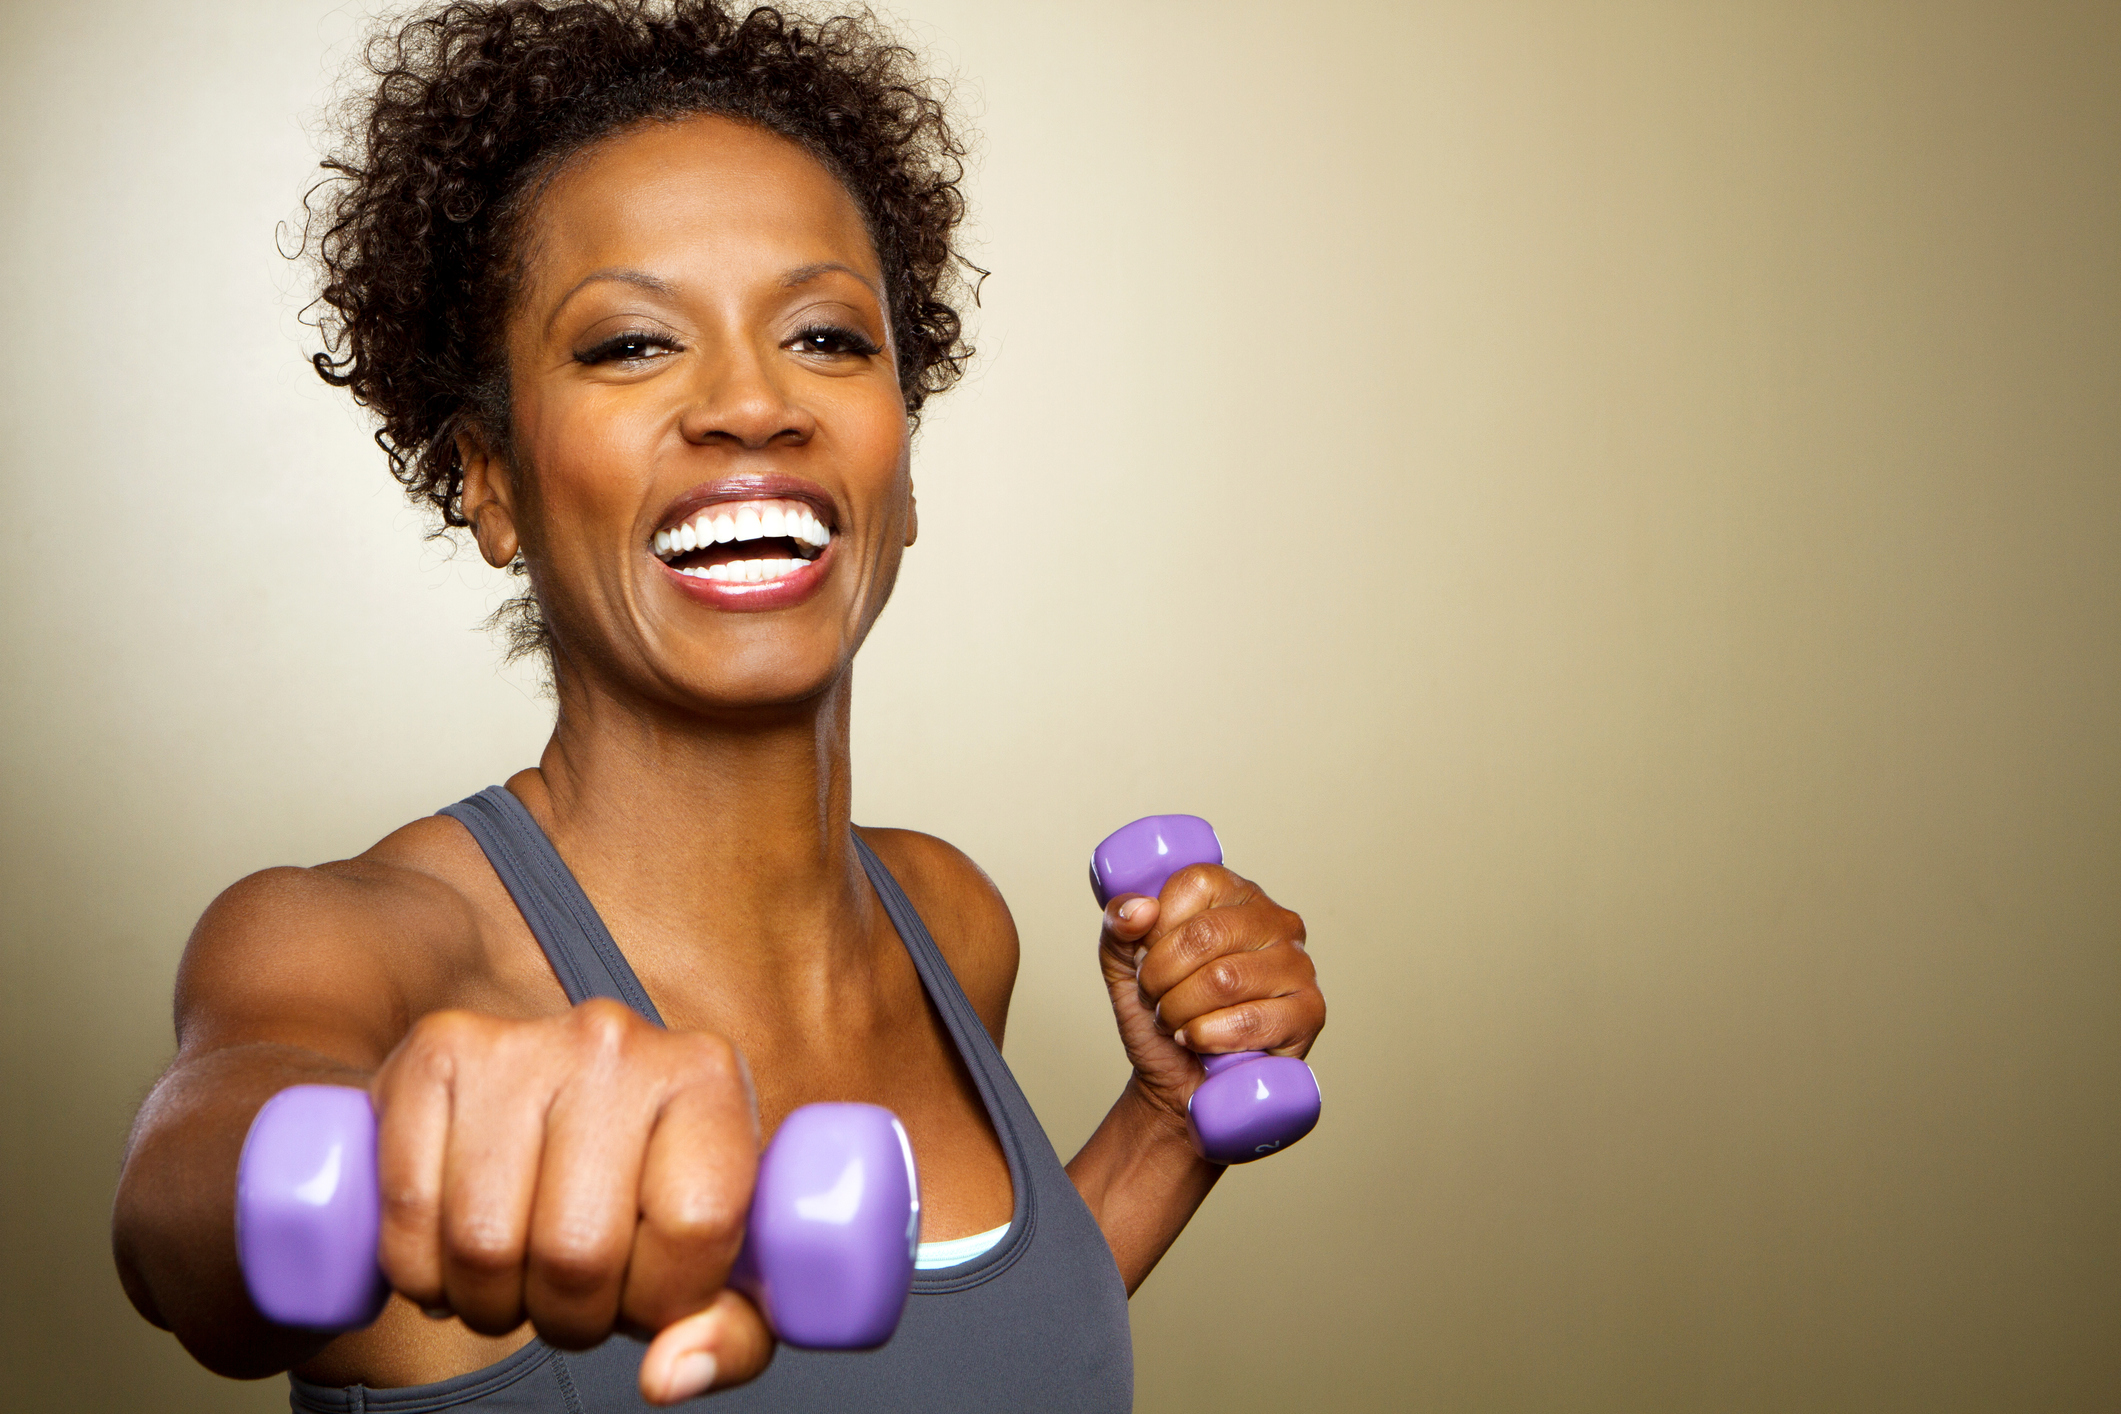 #Over40: Your Guide To Working Out While Grown